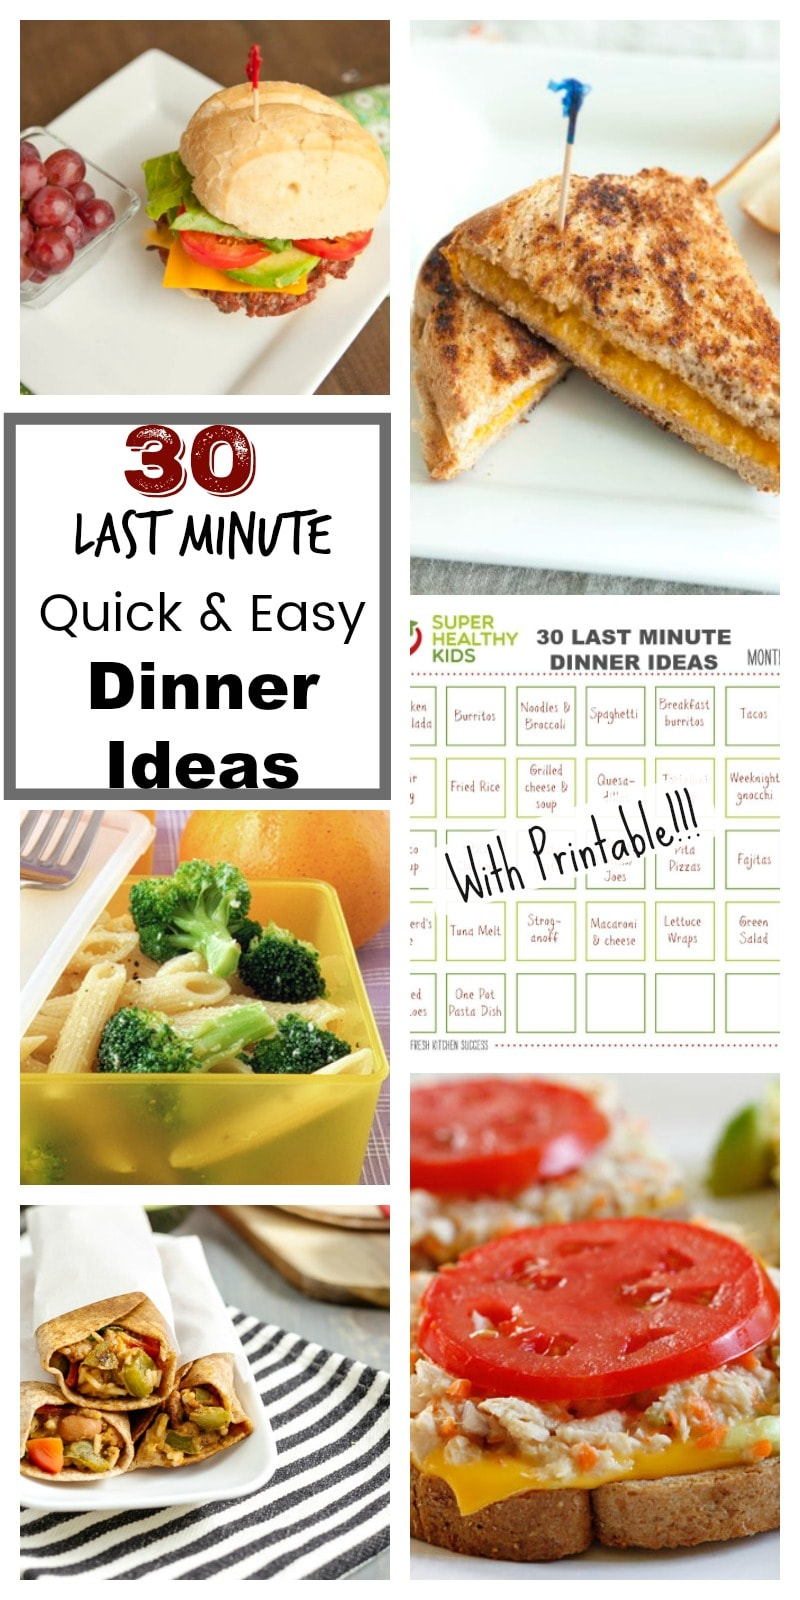 30 Quick and Easy Last Minute Dinner Ideas | Healthy Ideas for Kids